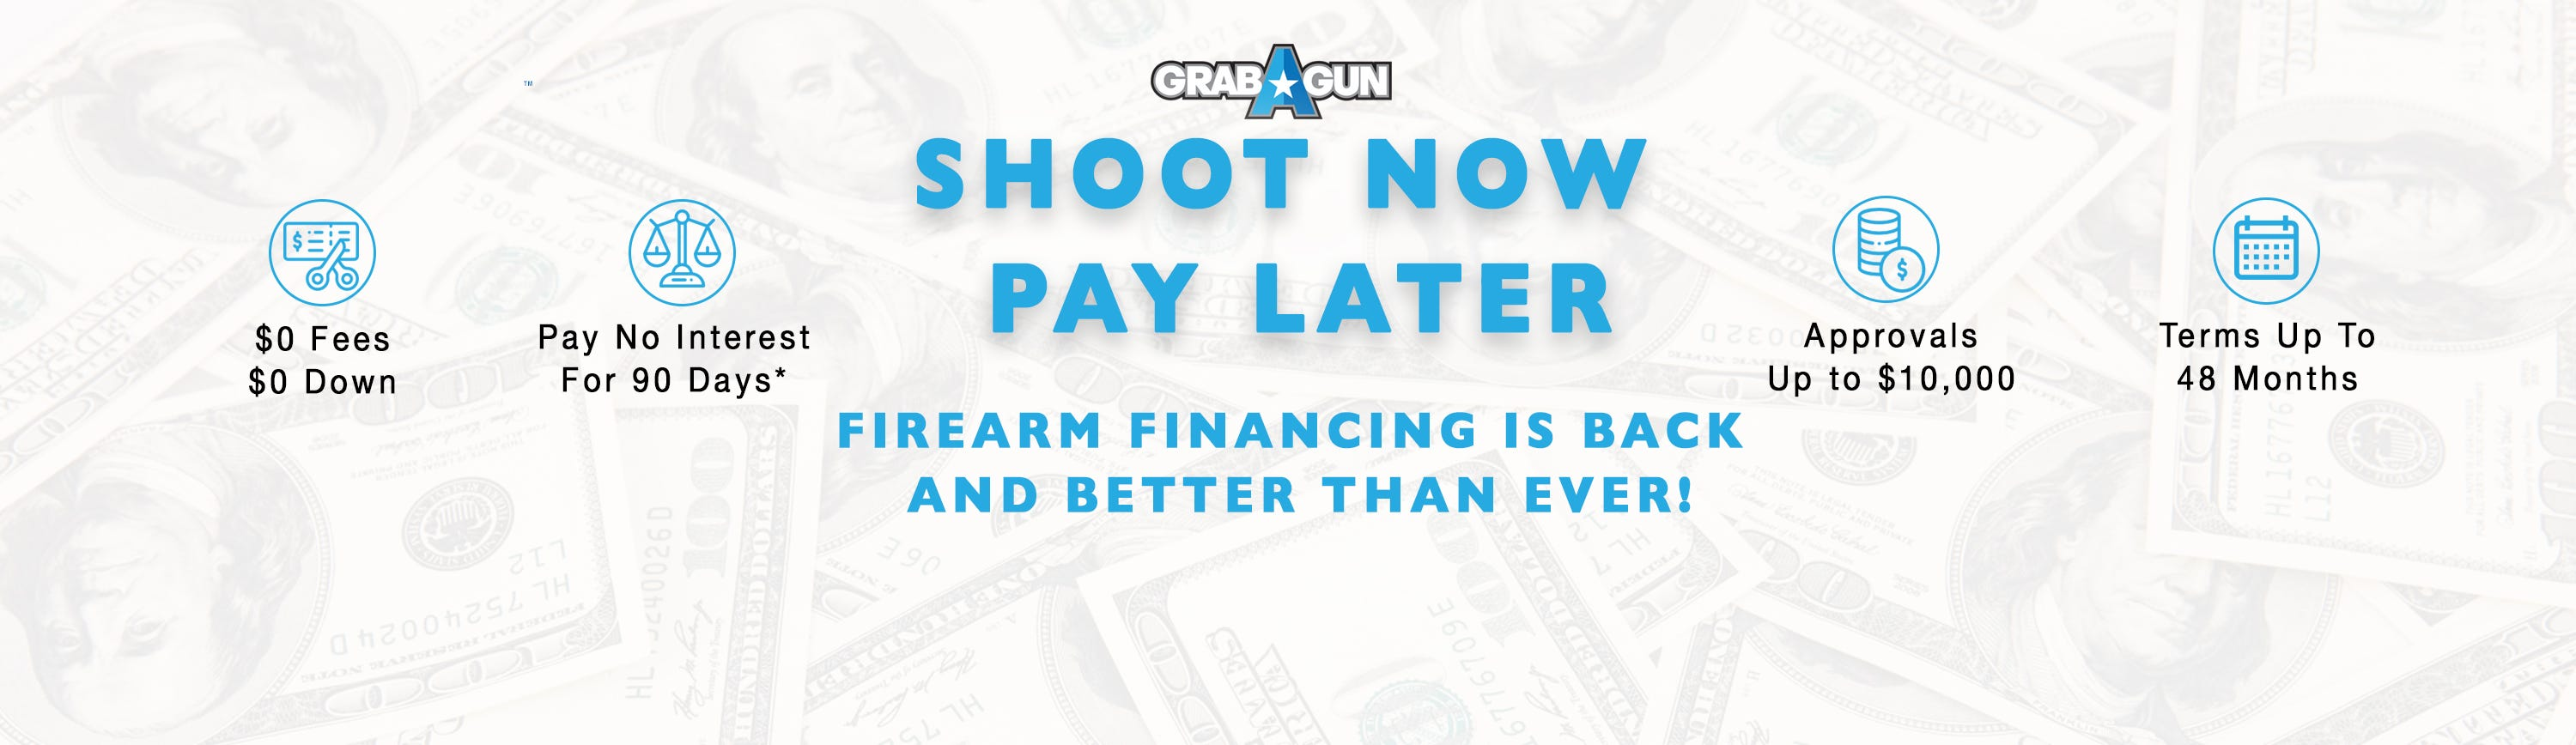 Shoot Now Pay Later - Firearm Financing